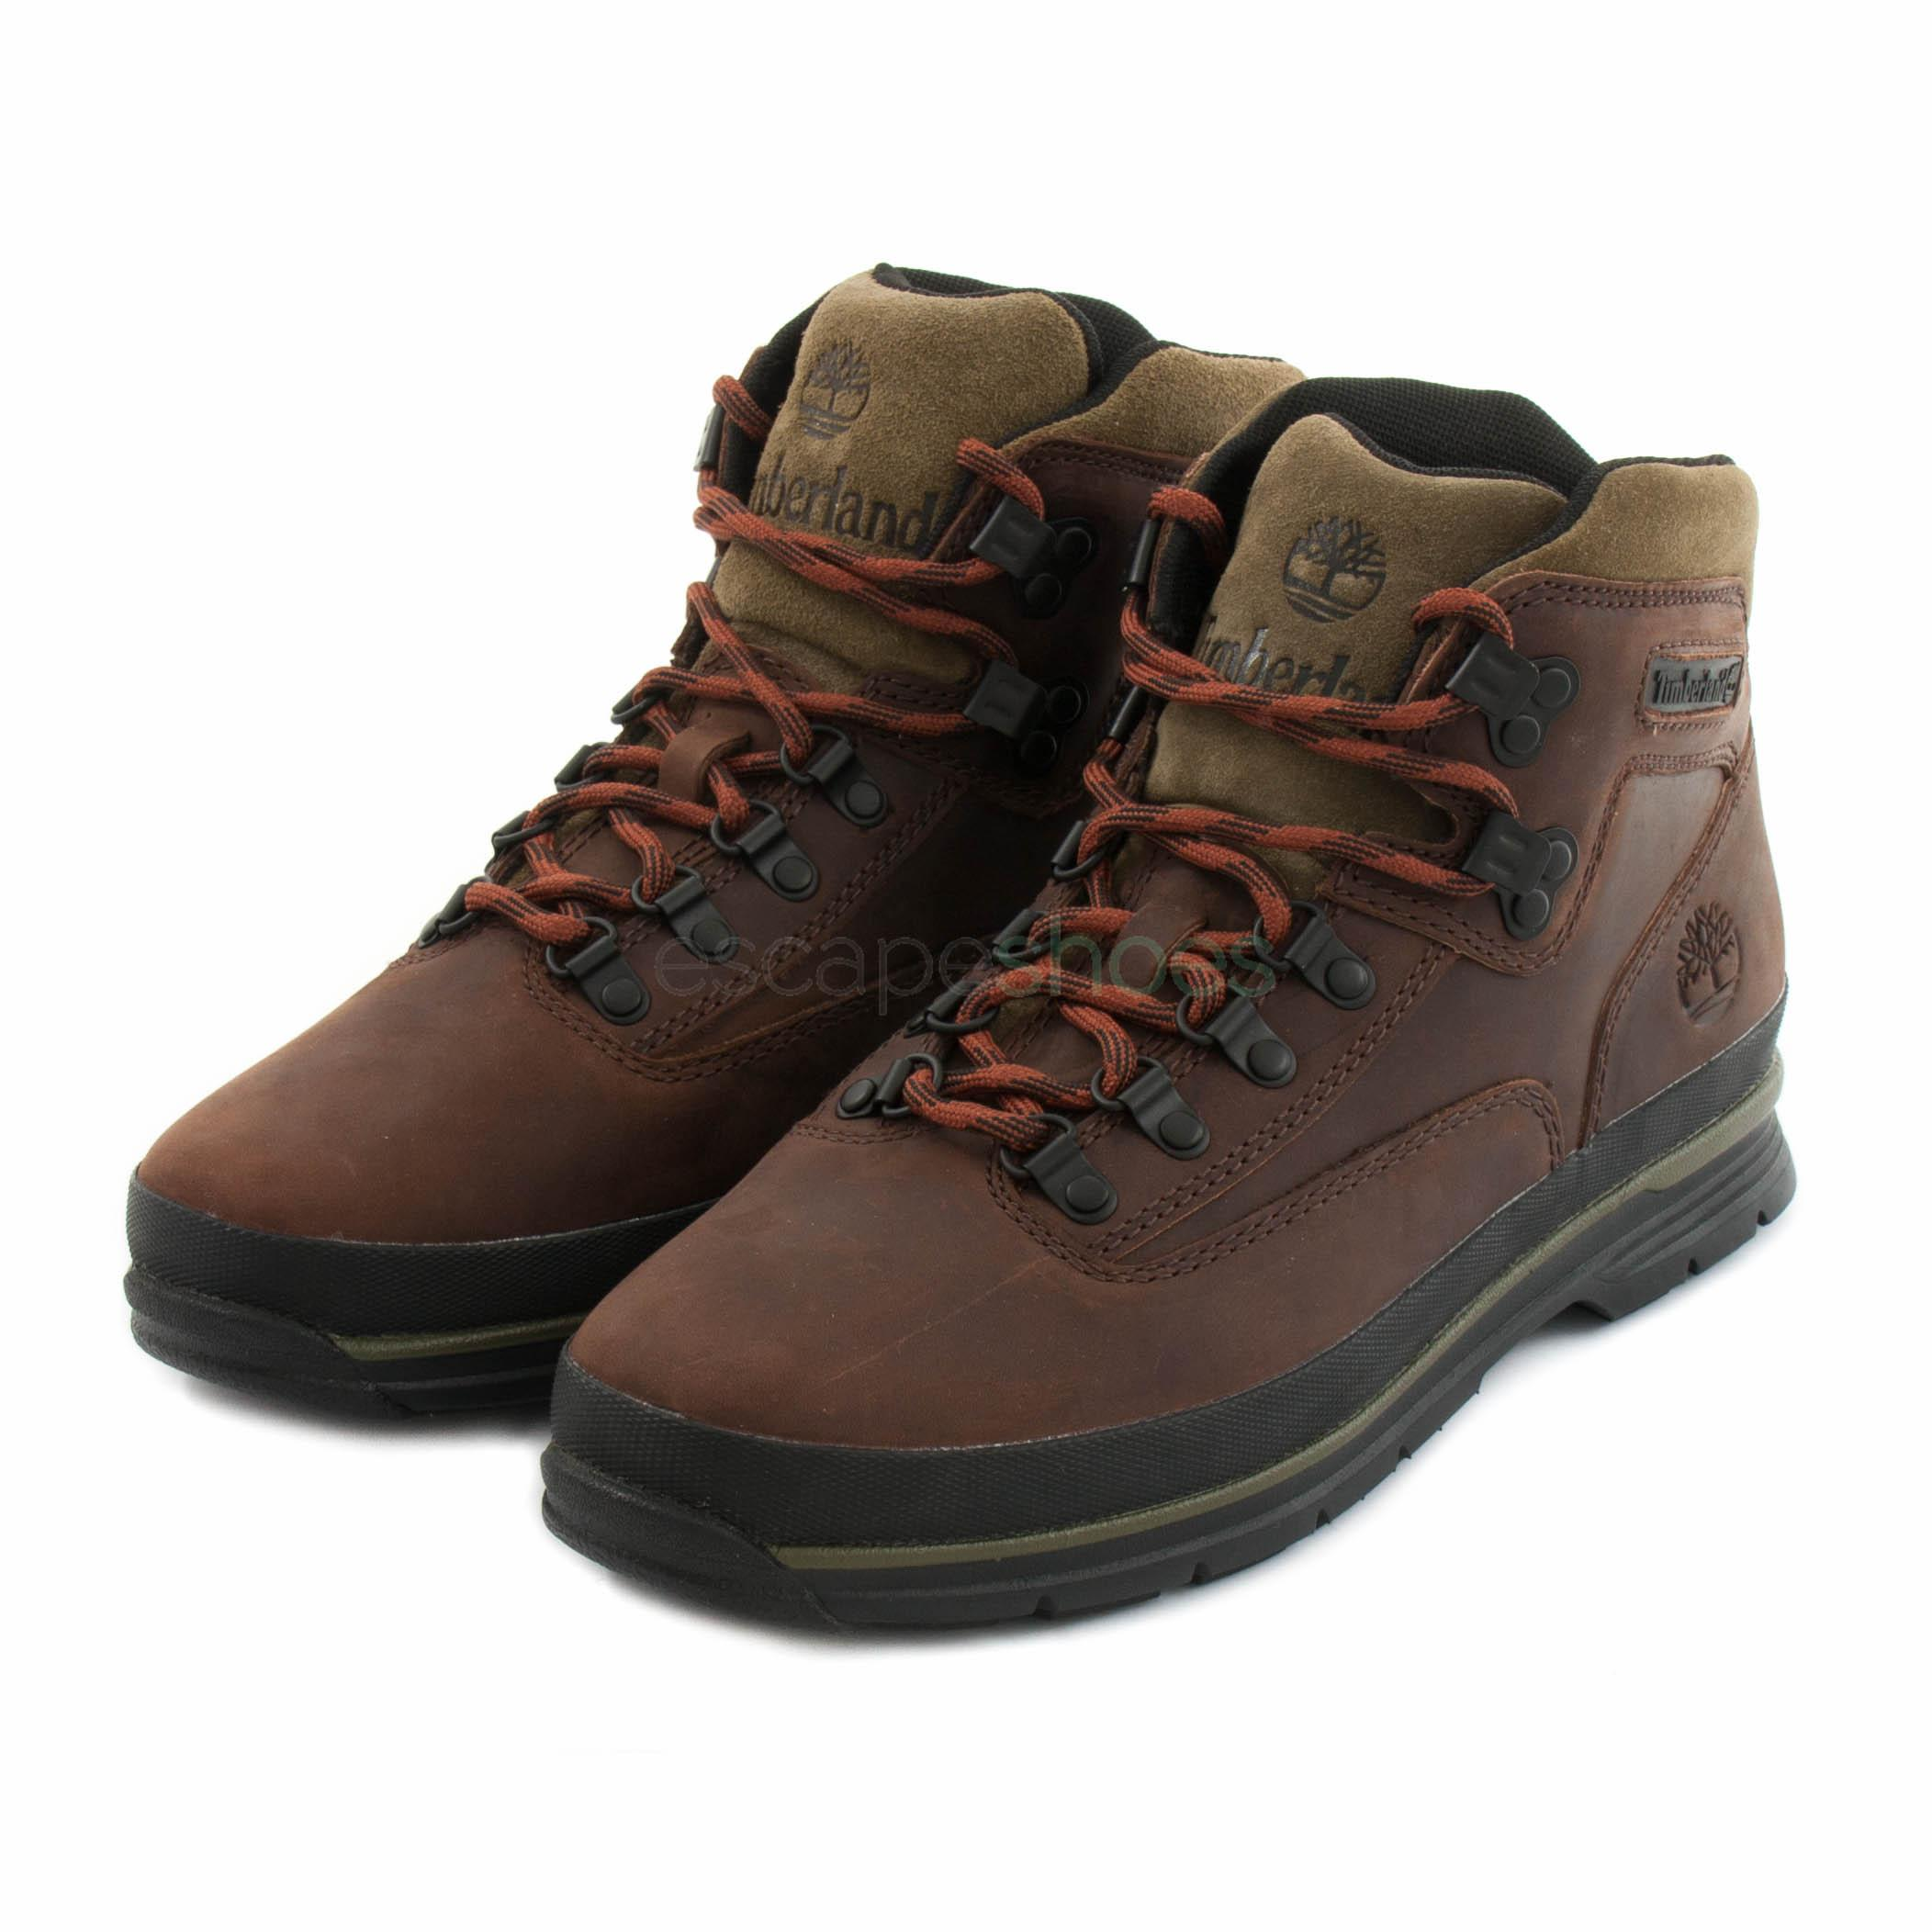 ced5dab97bad9 Boots TIMBERLAND Euro Hiker Potting Soil - EscapeShoes